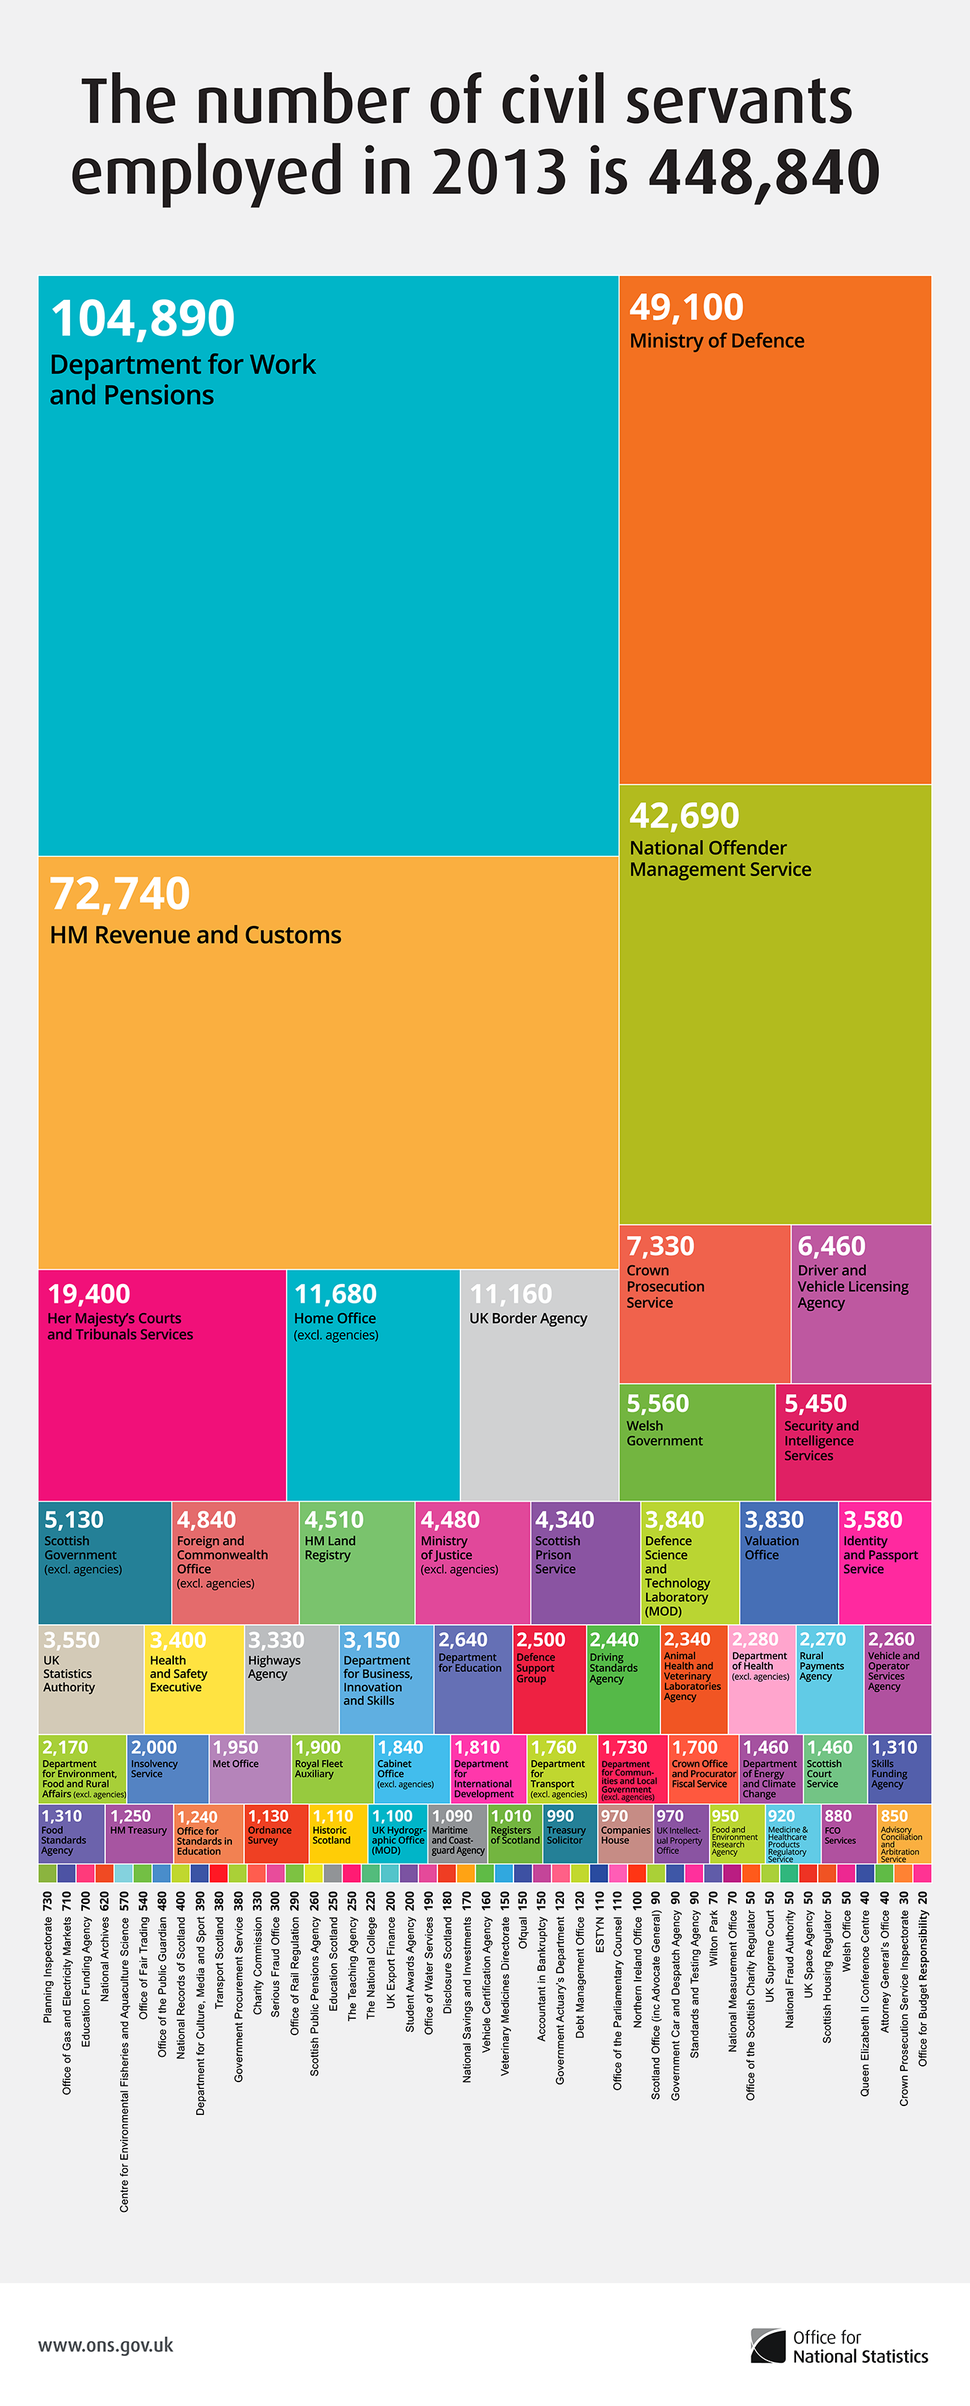 The number of civil servants employed in the UK in 2013 is 448,840